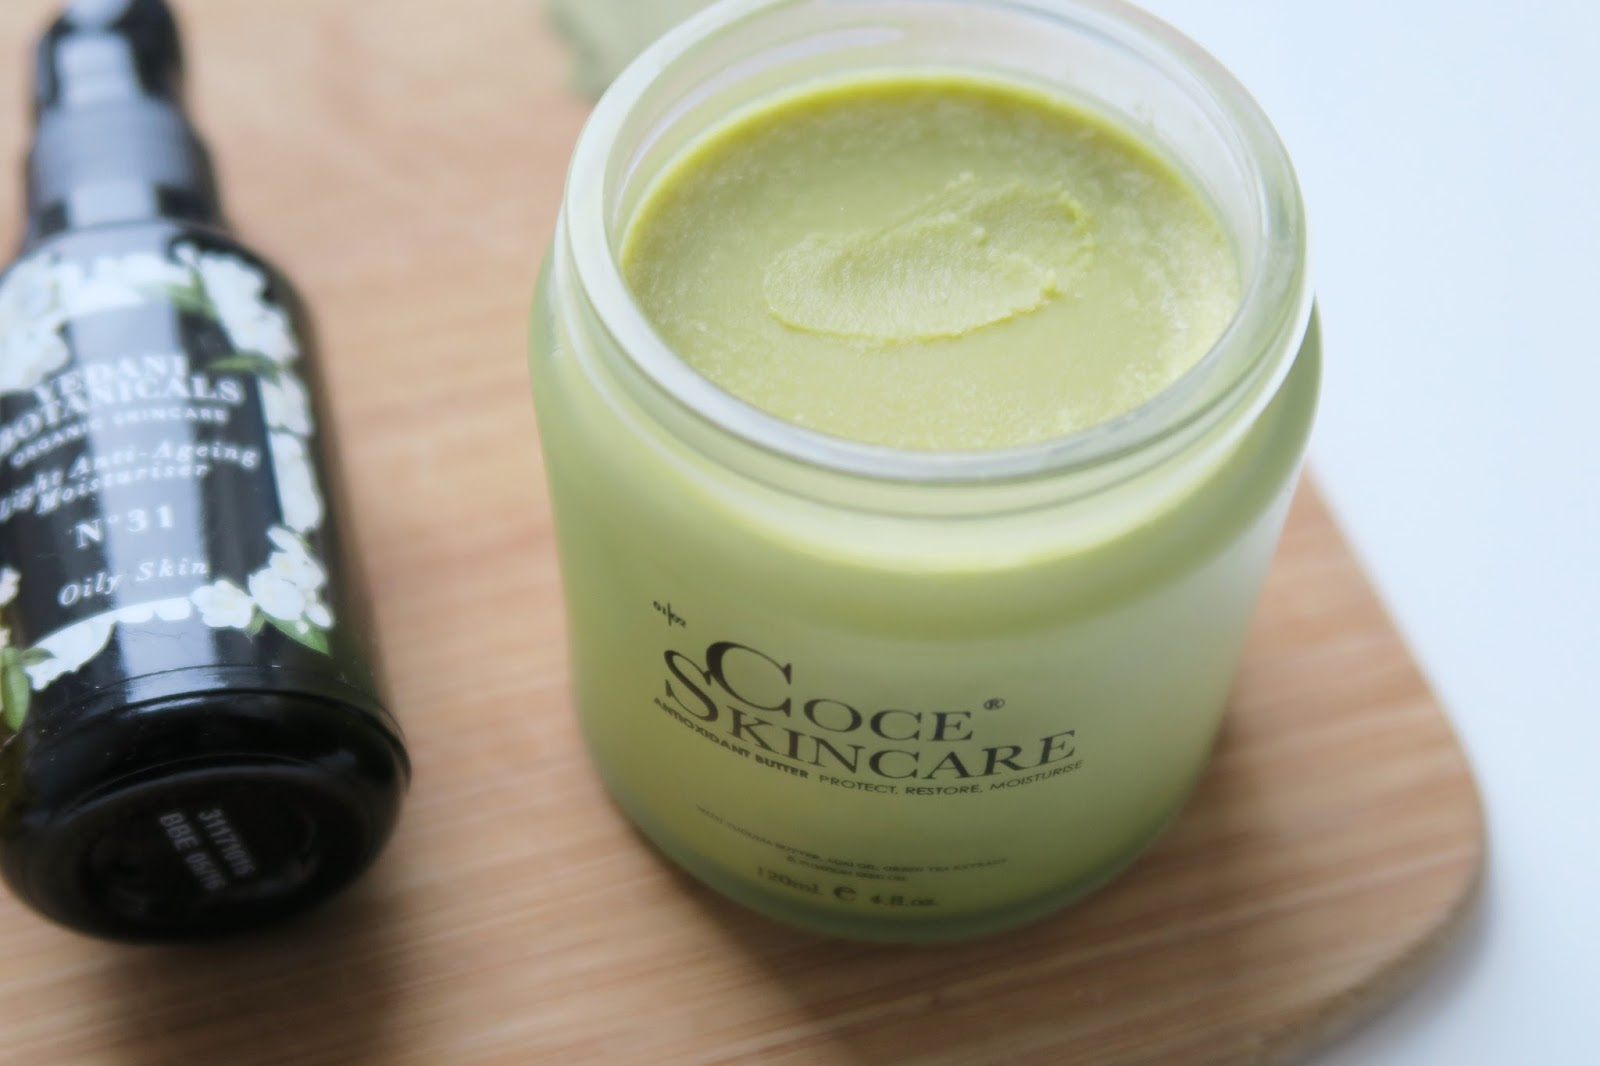 Superfood Skincare Coce Skincare Antioxidant Body Butter